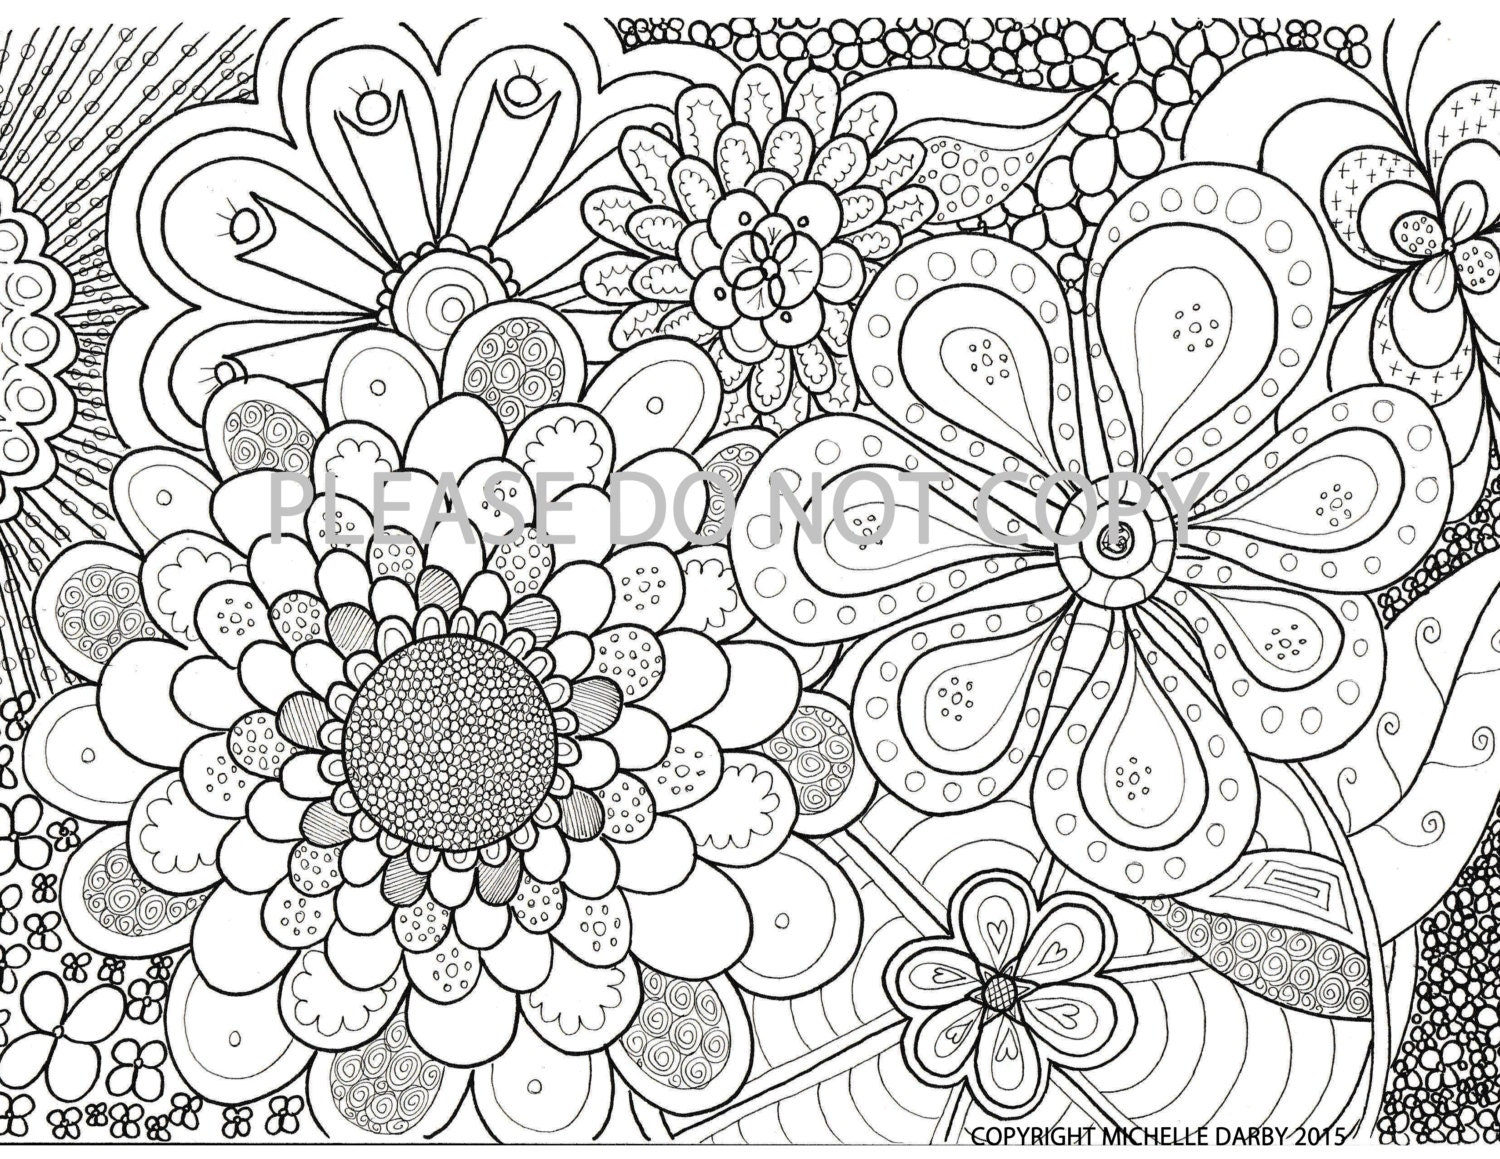 Coloring Pages For Zen : Flower Power Zen Mandala Colouring Page